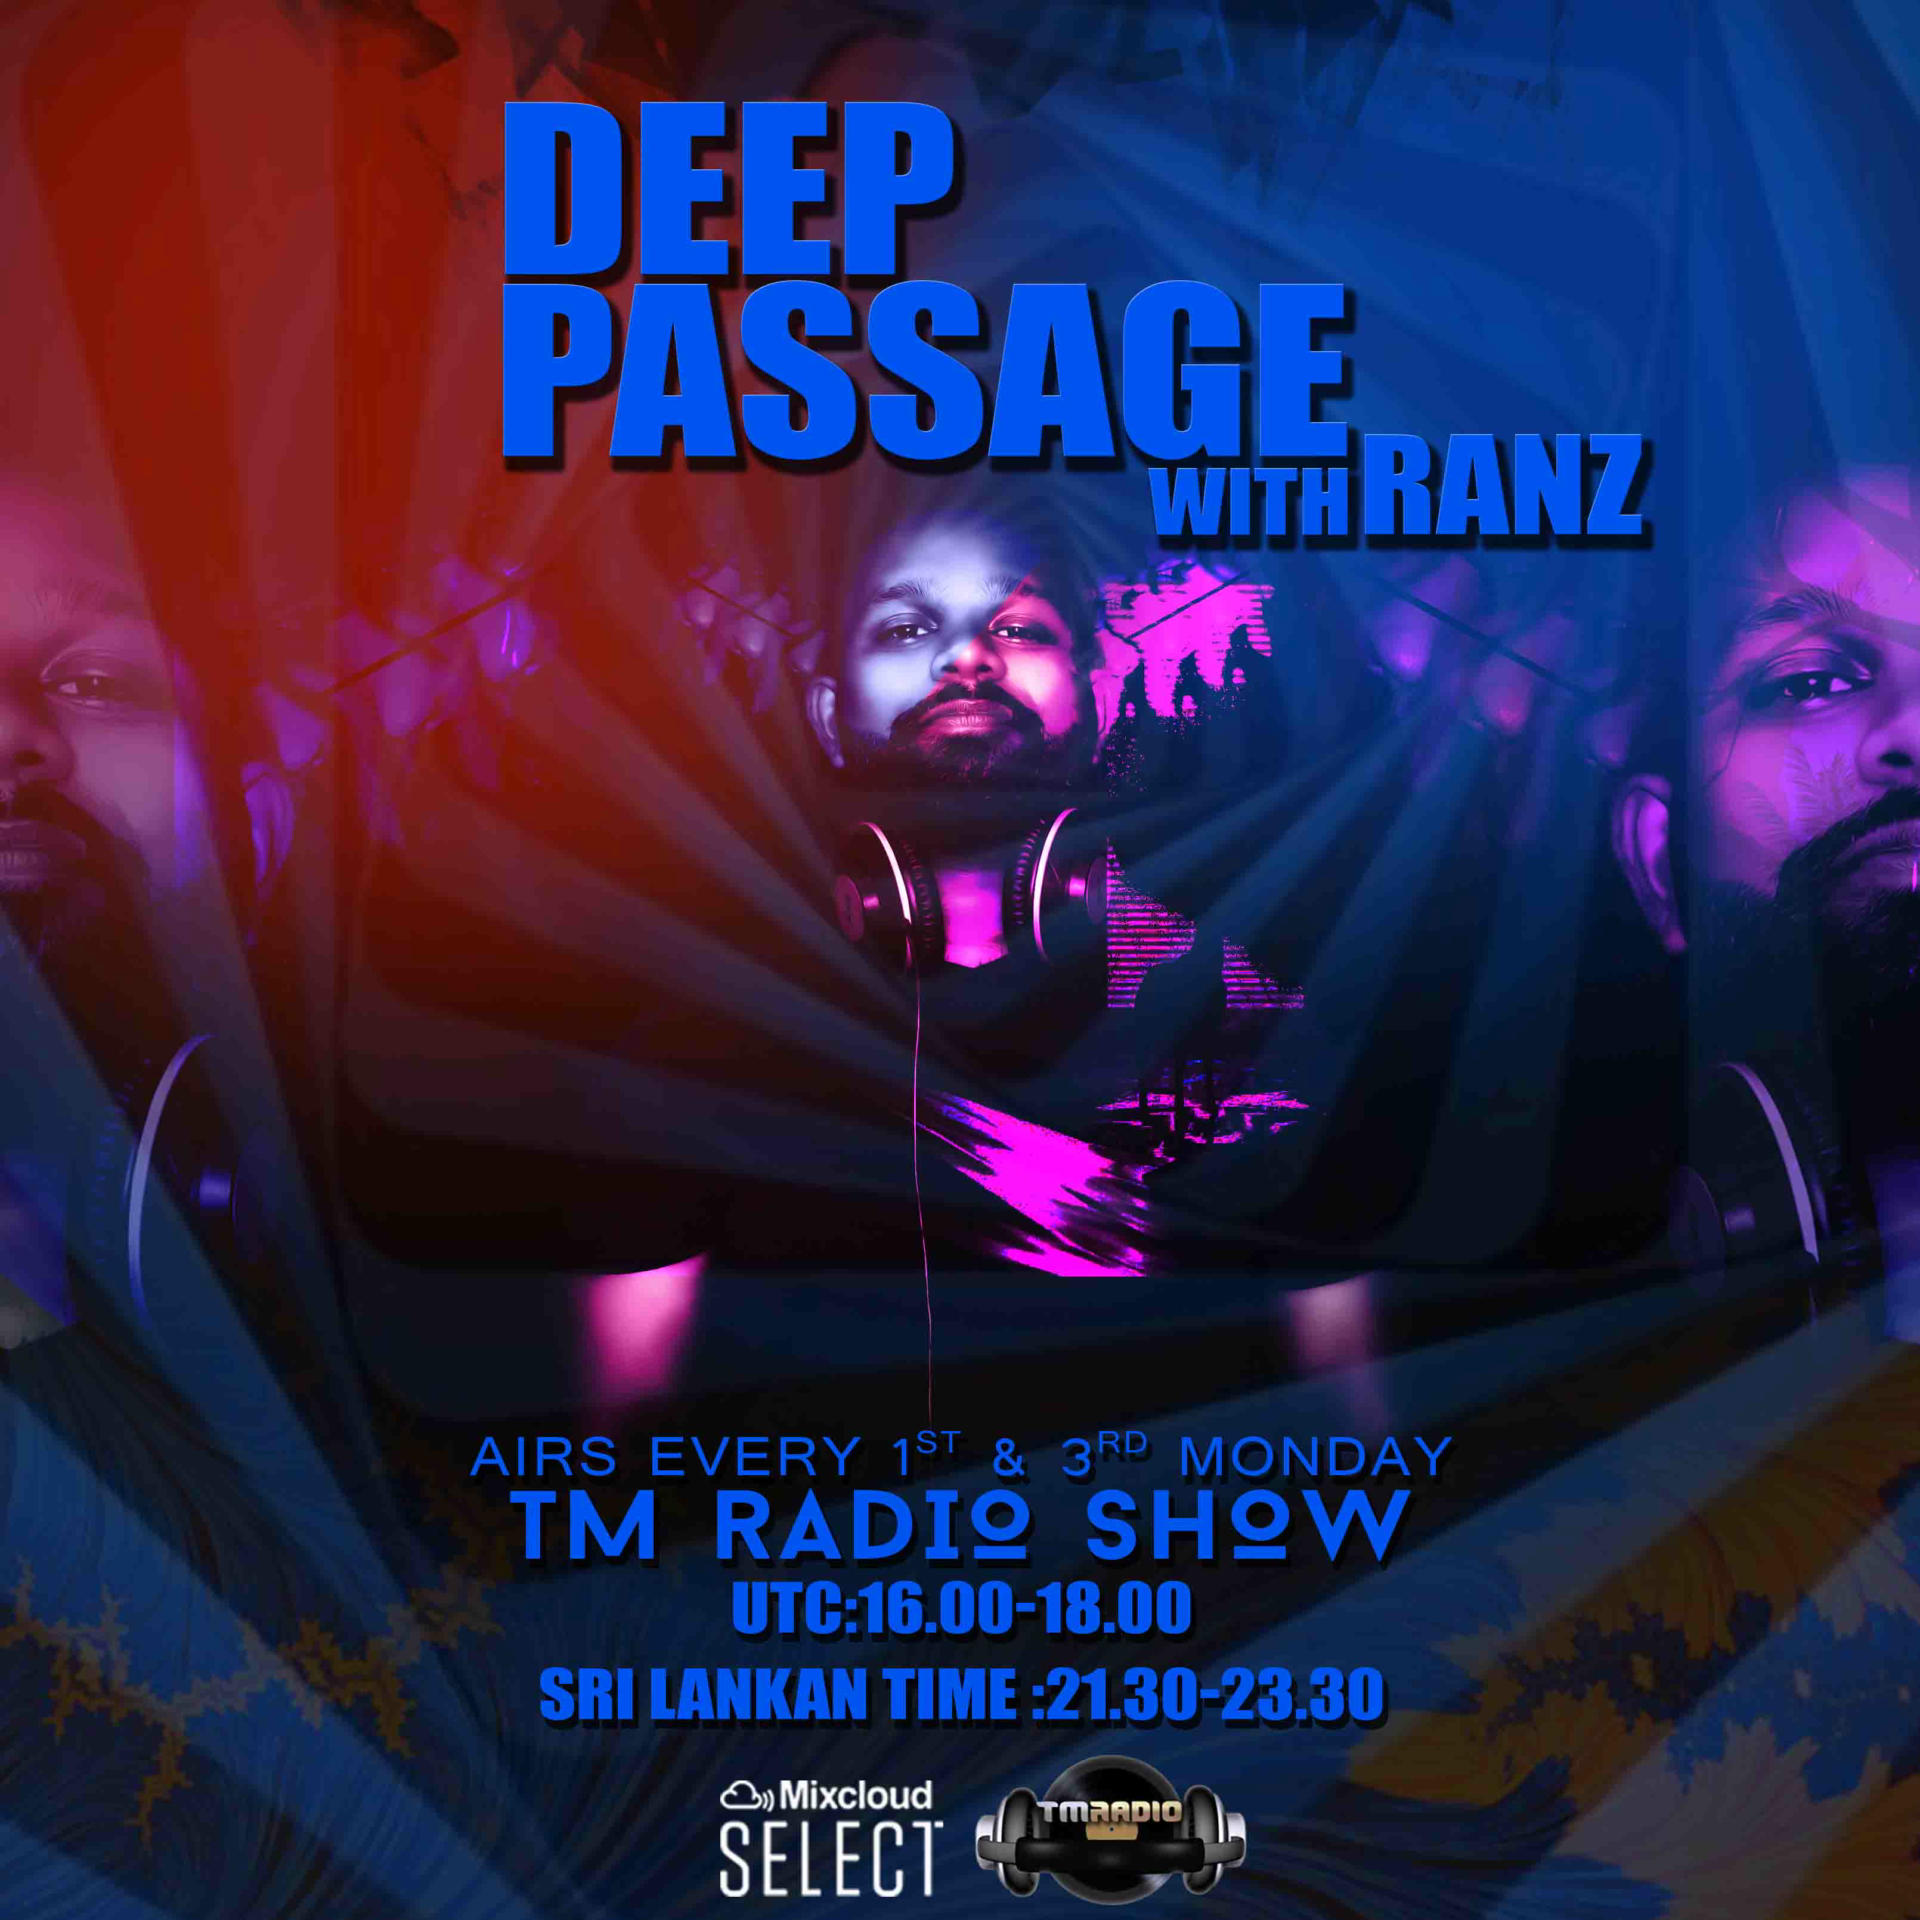 DEEP PASSAGE :: Episode aired on April 6, 2020, 7pm banner logo